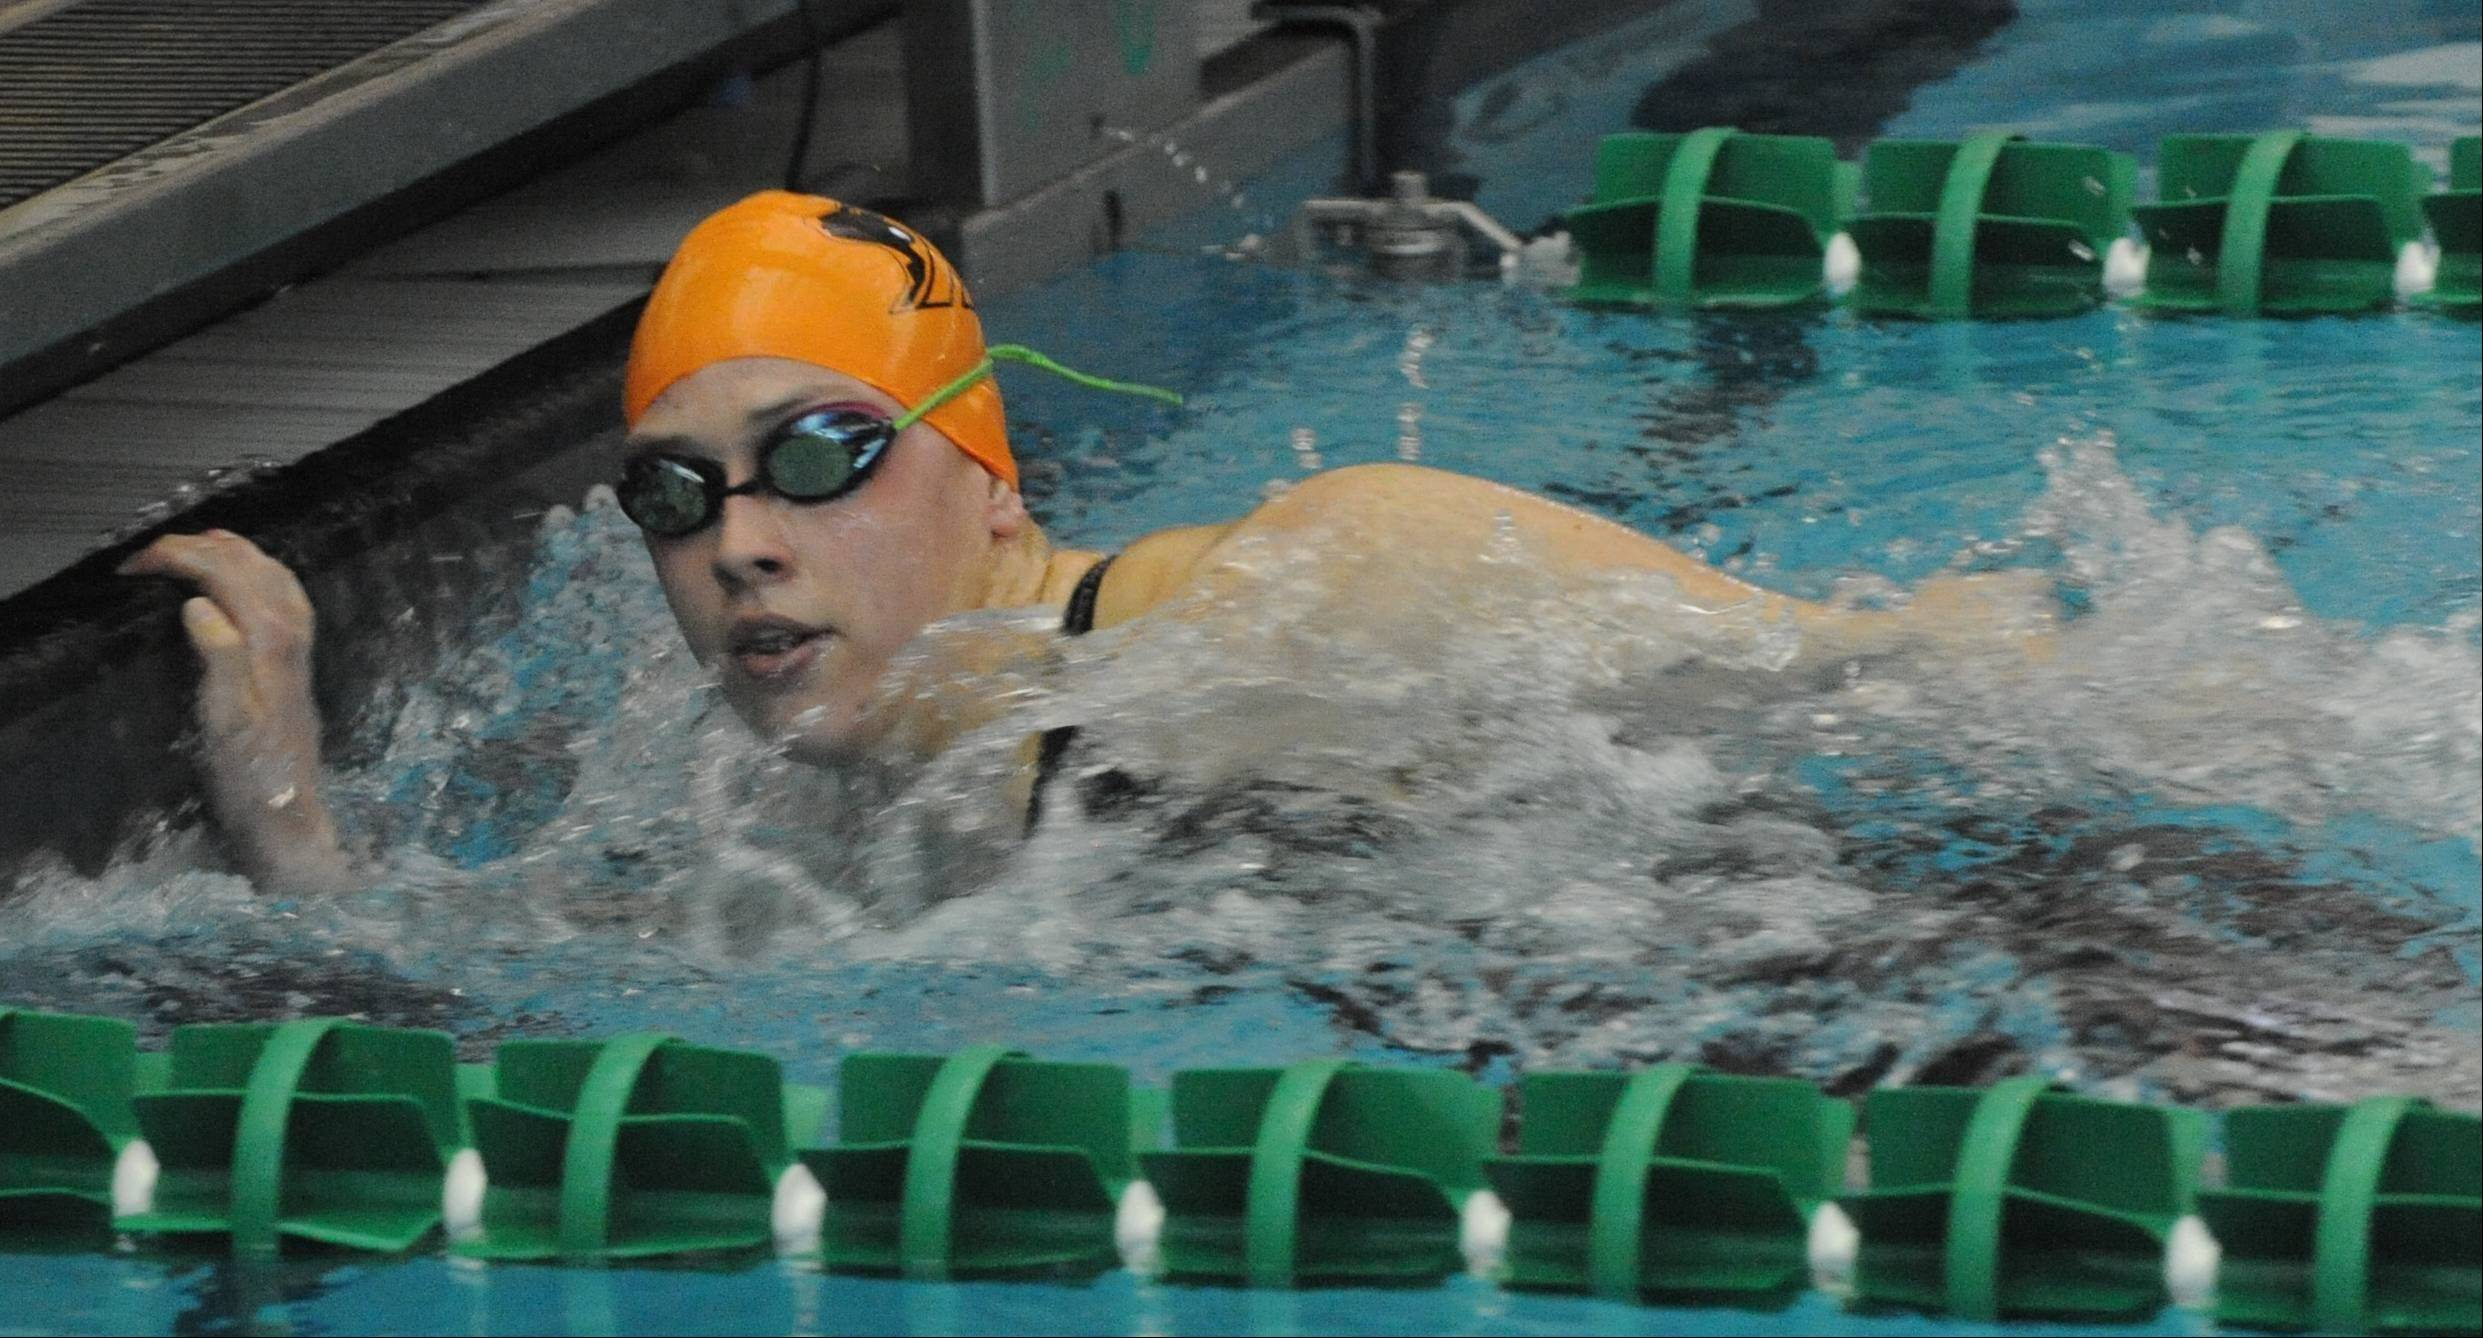 Hersey senior Amanda Petro gets to the wall with a winning effort in the 200-yard IM at Saturday's Stevenson sectional.